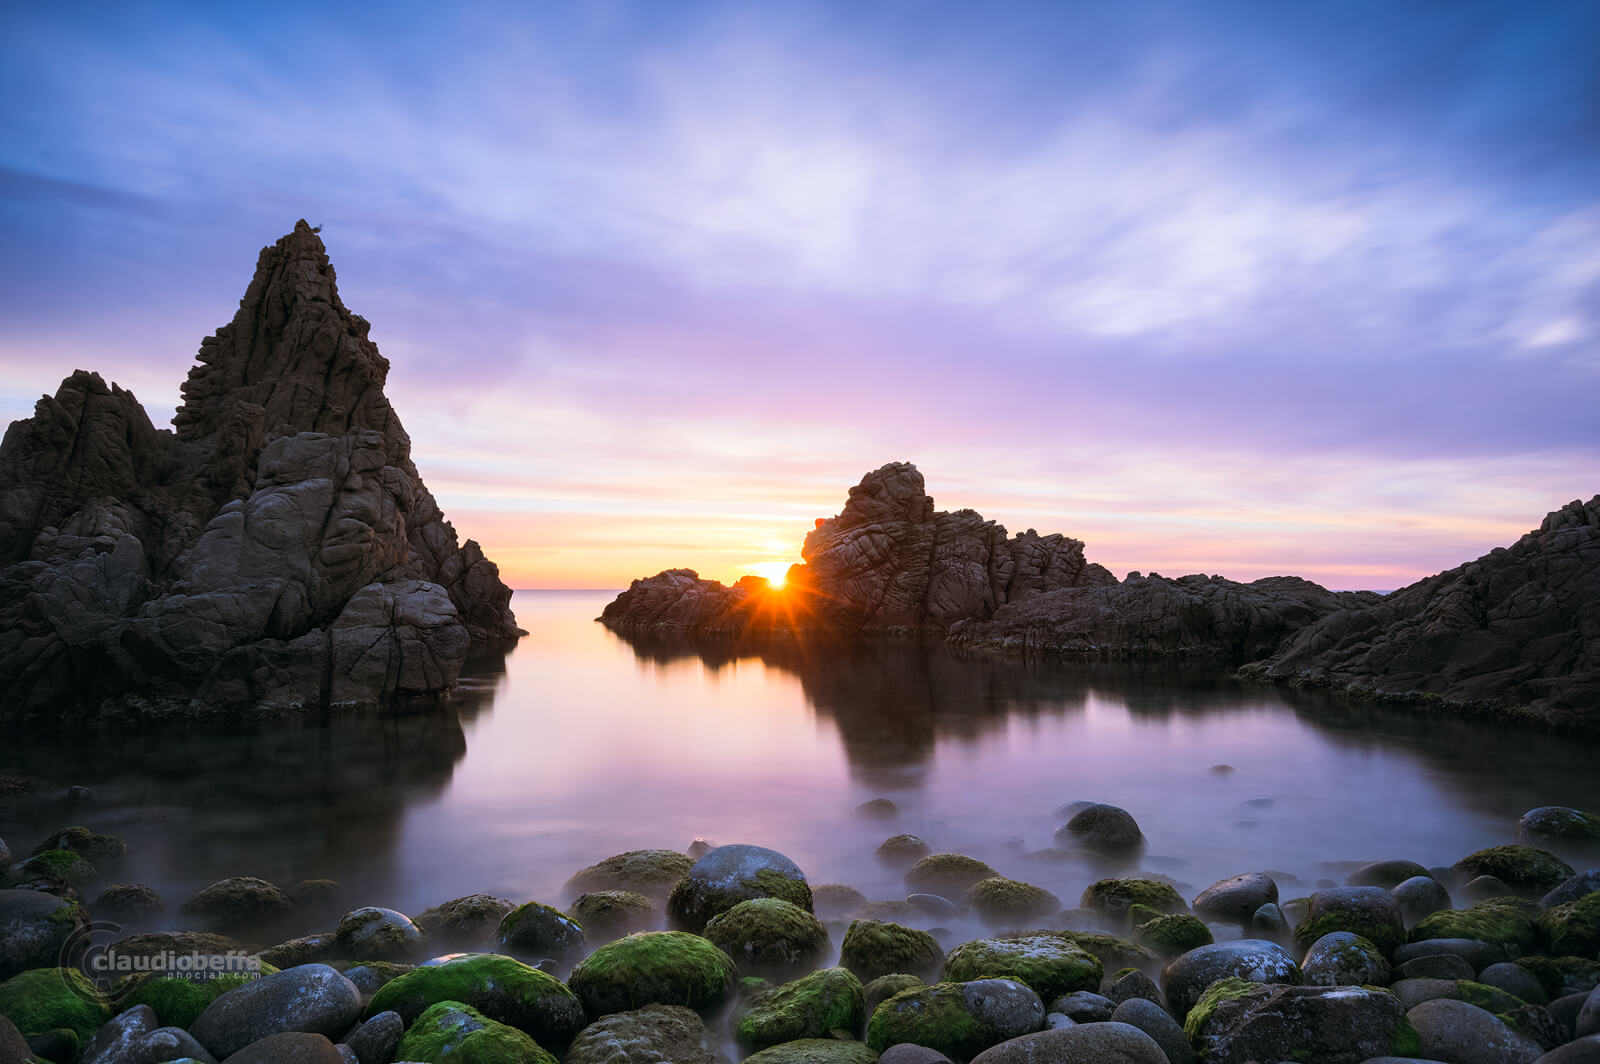 Capo Pecora, Sardinia, Italy, Sea, Seascape, Sunset, Sun, Sunbeams, Cove, Shore, Pebbles, Rocks, Long exposure